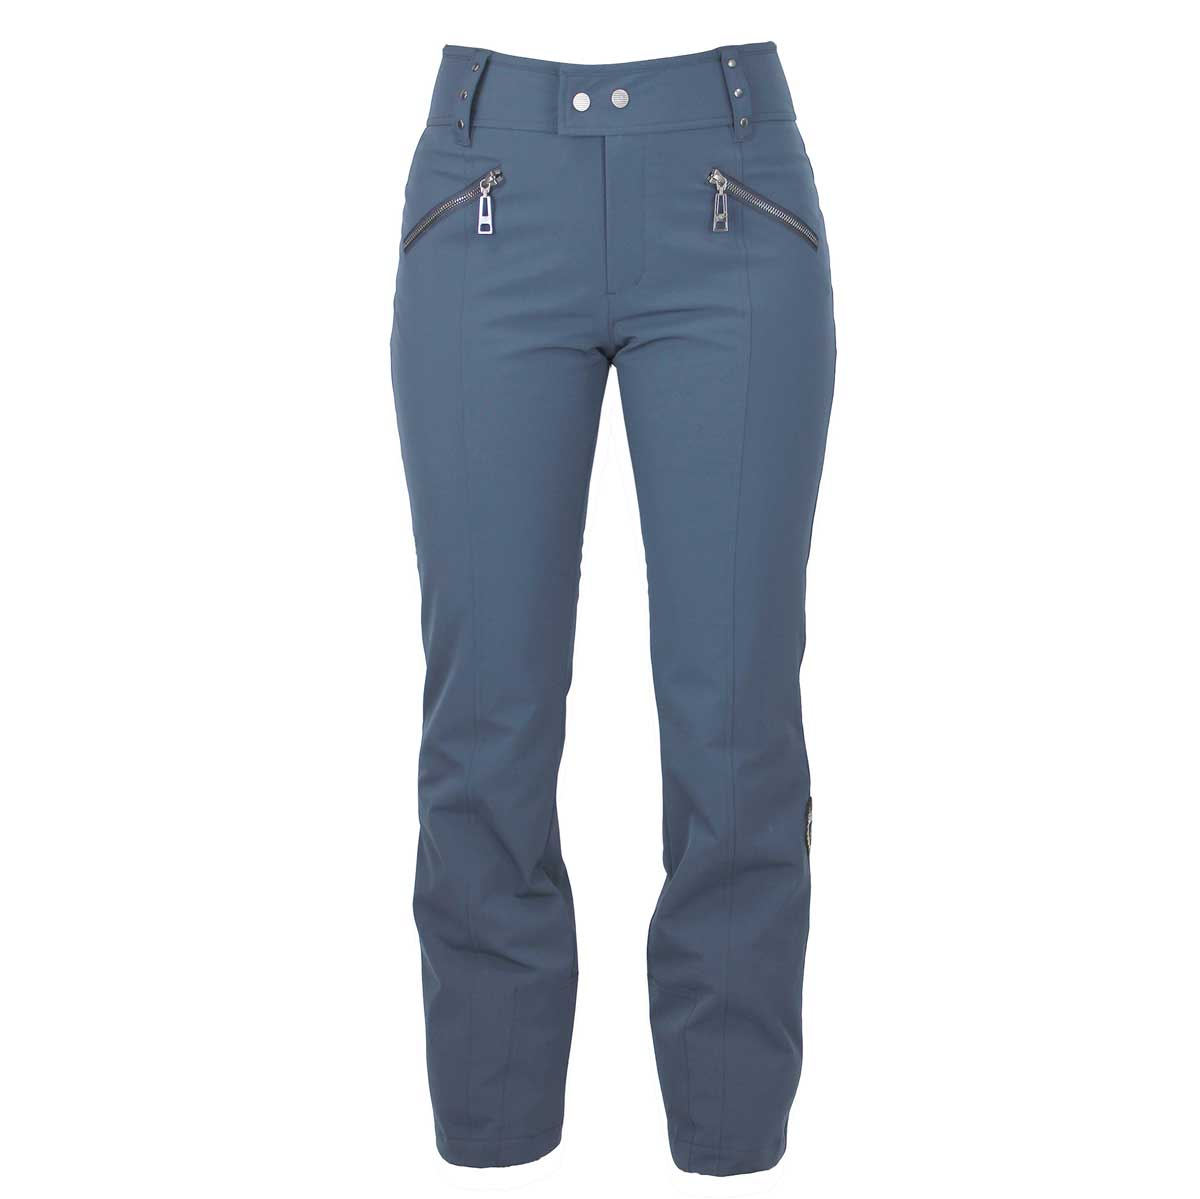 Skea Kira Stretch Pant in Bering Sea